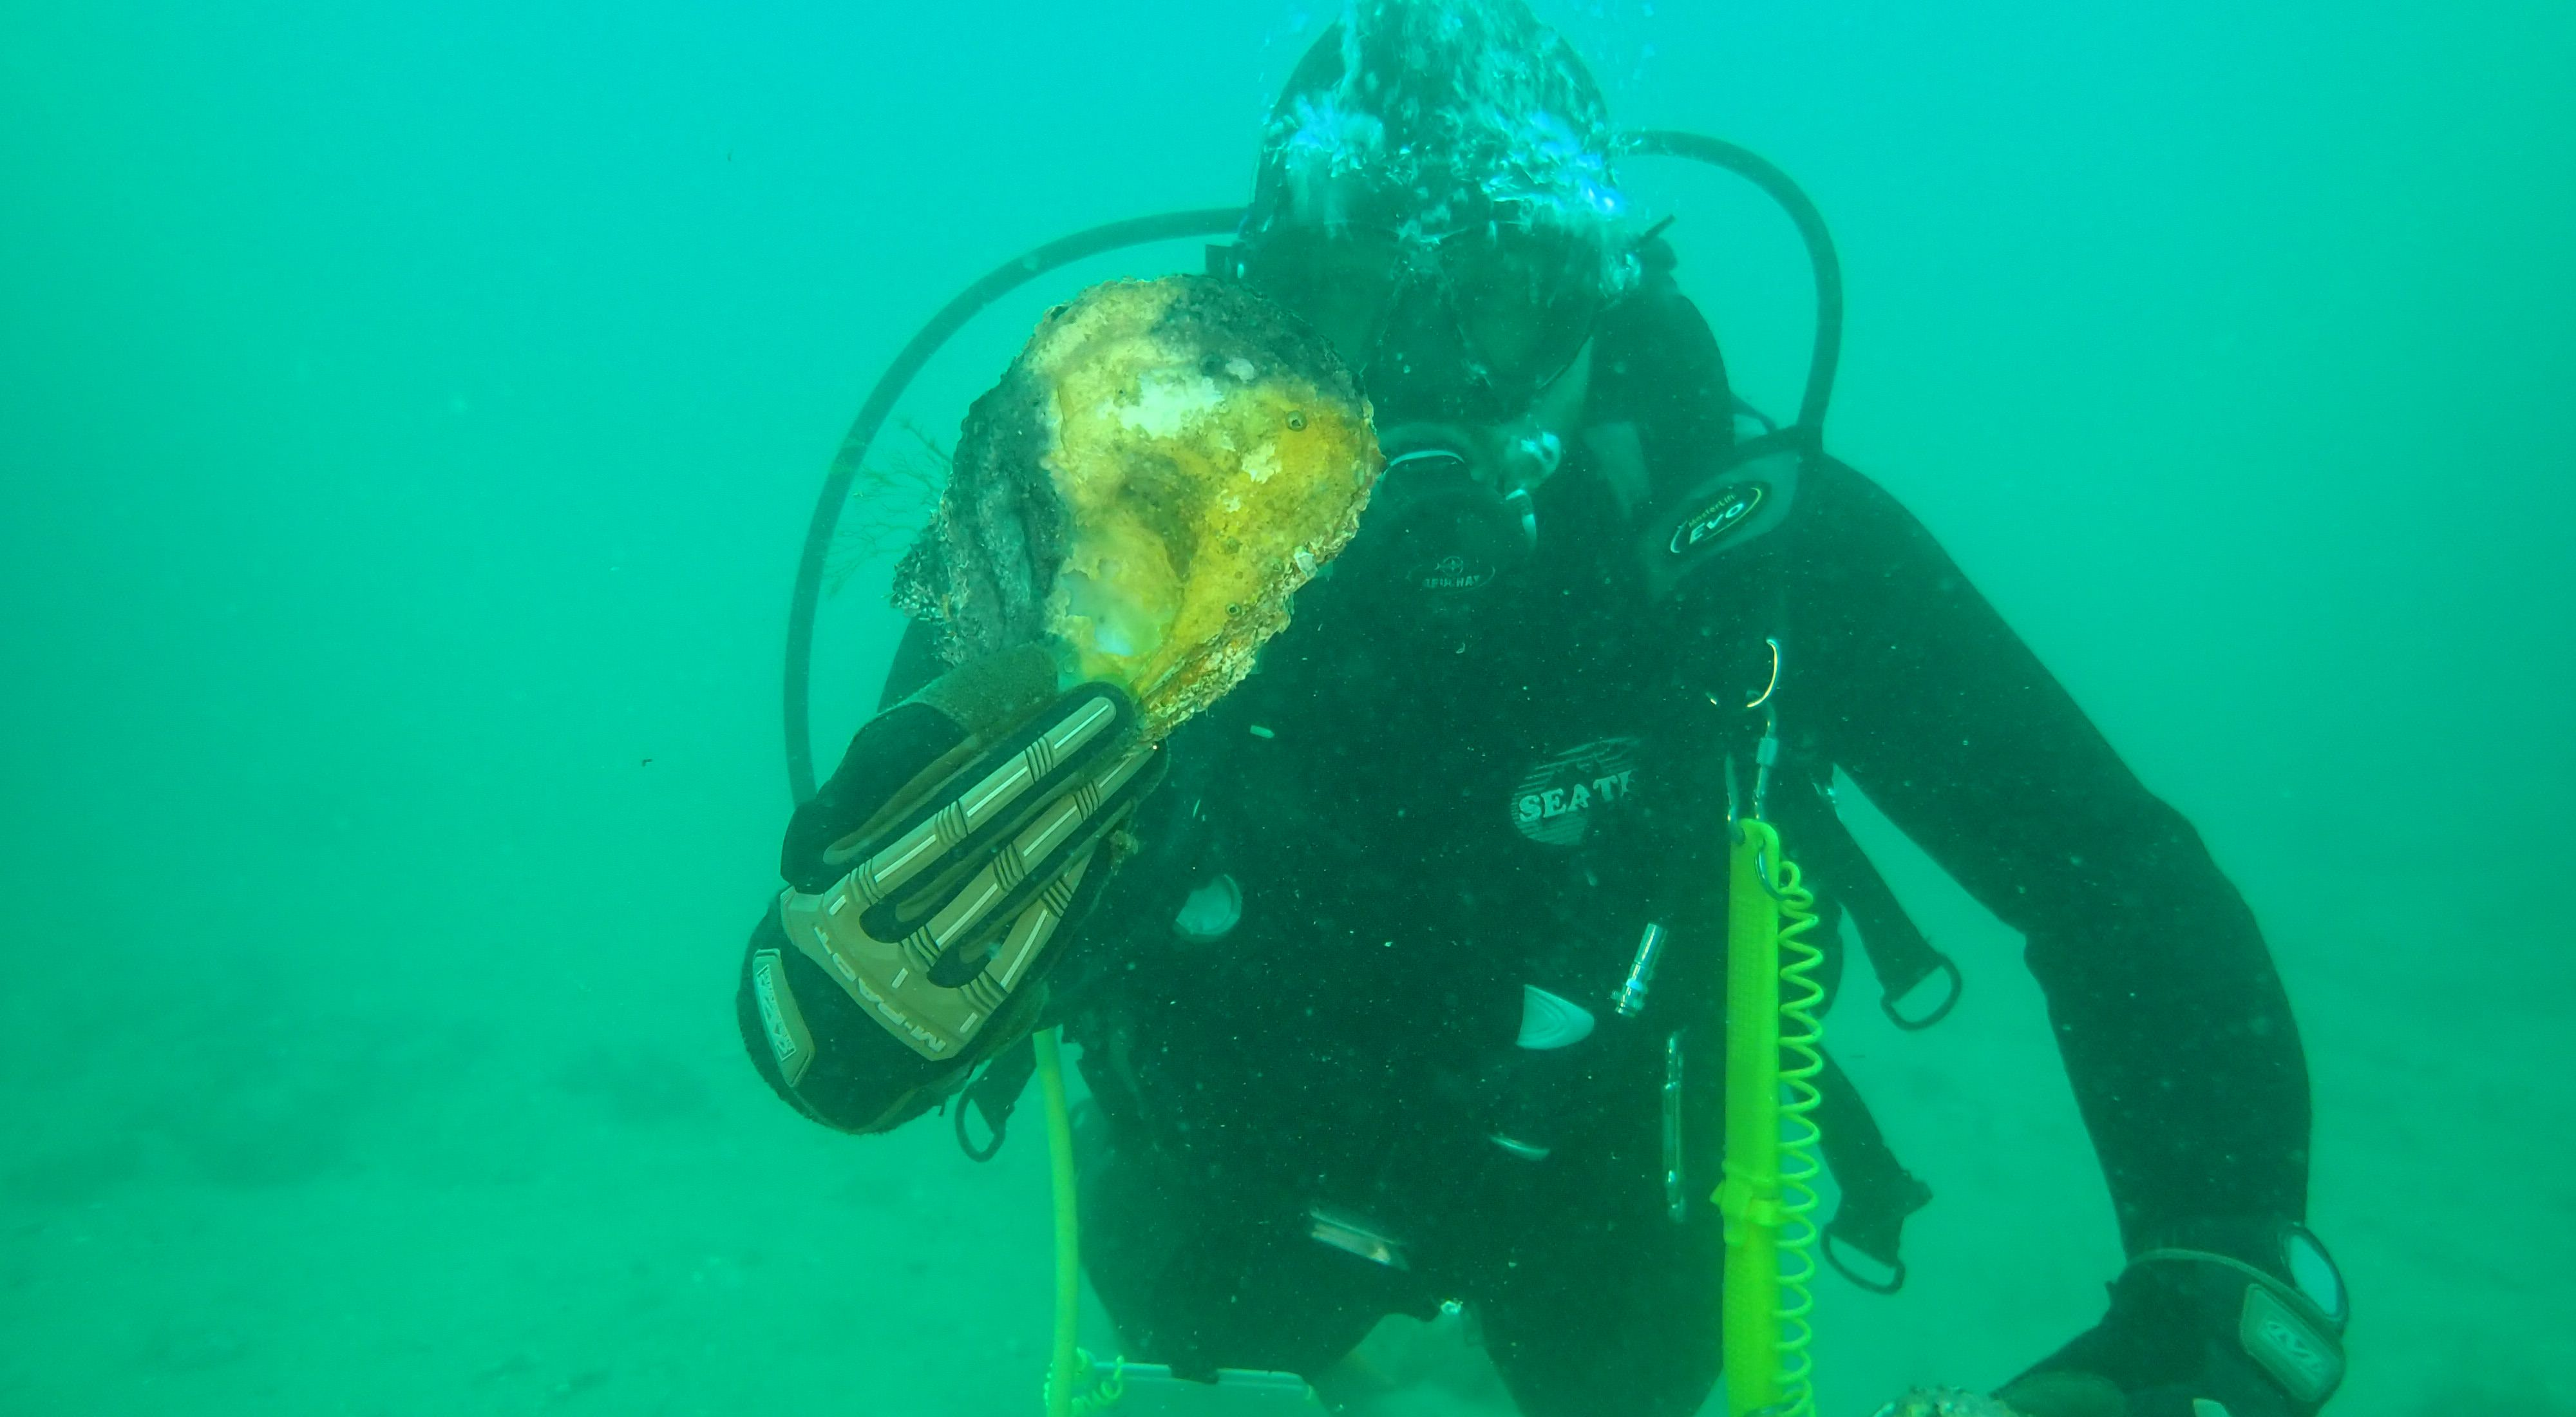 finds evidence of lost oyster reefs off Dromana, Victoria